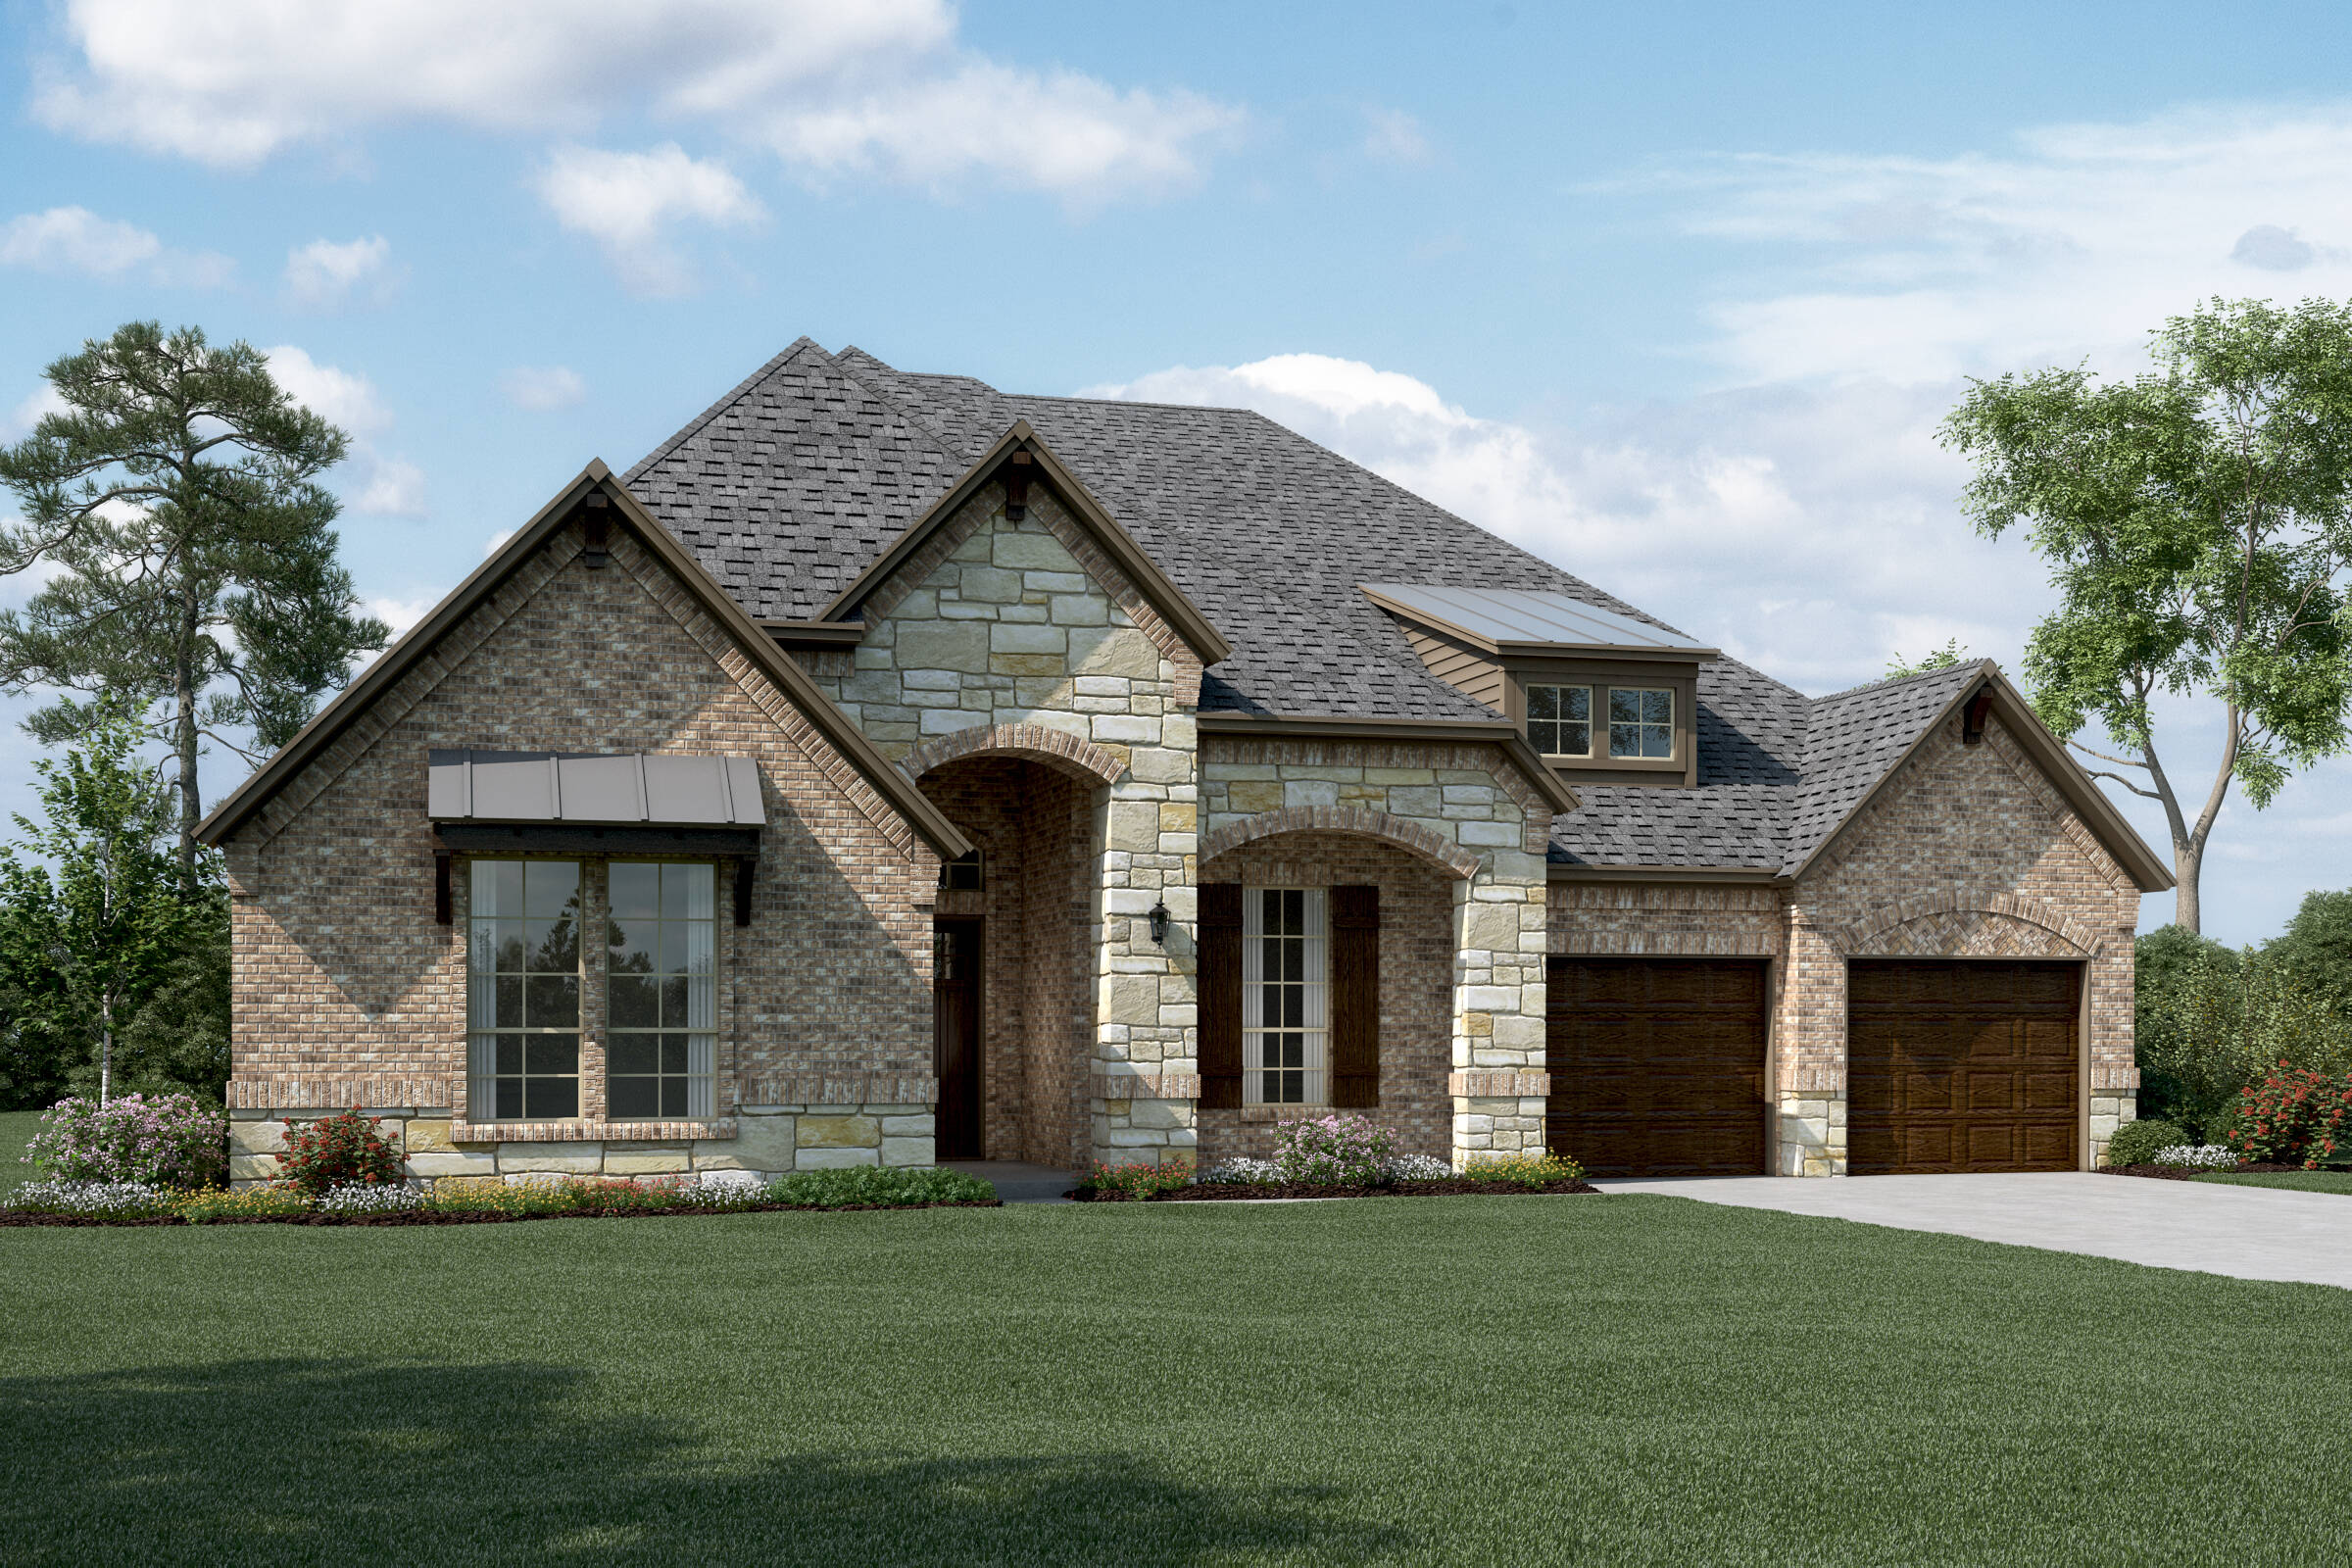 Barrington C Stone new homes dallas tx